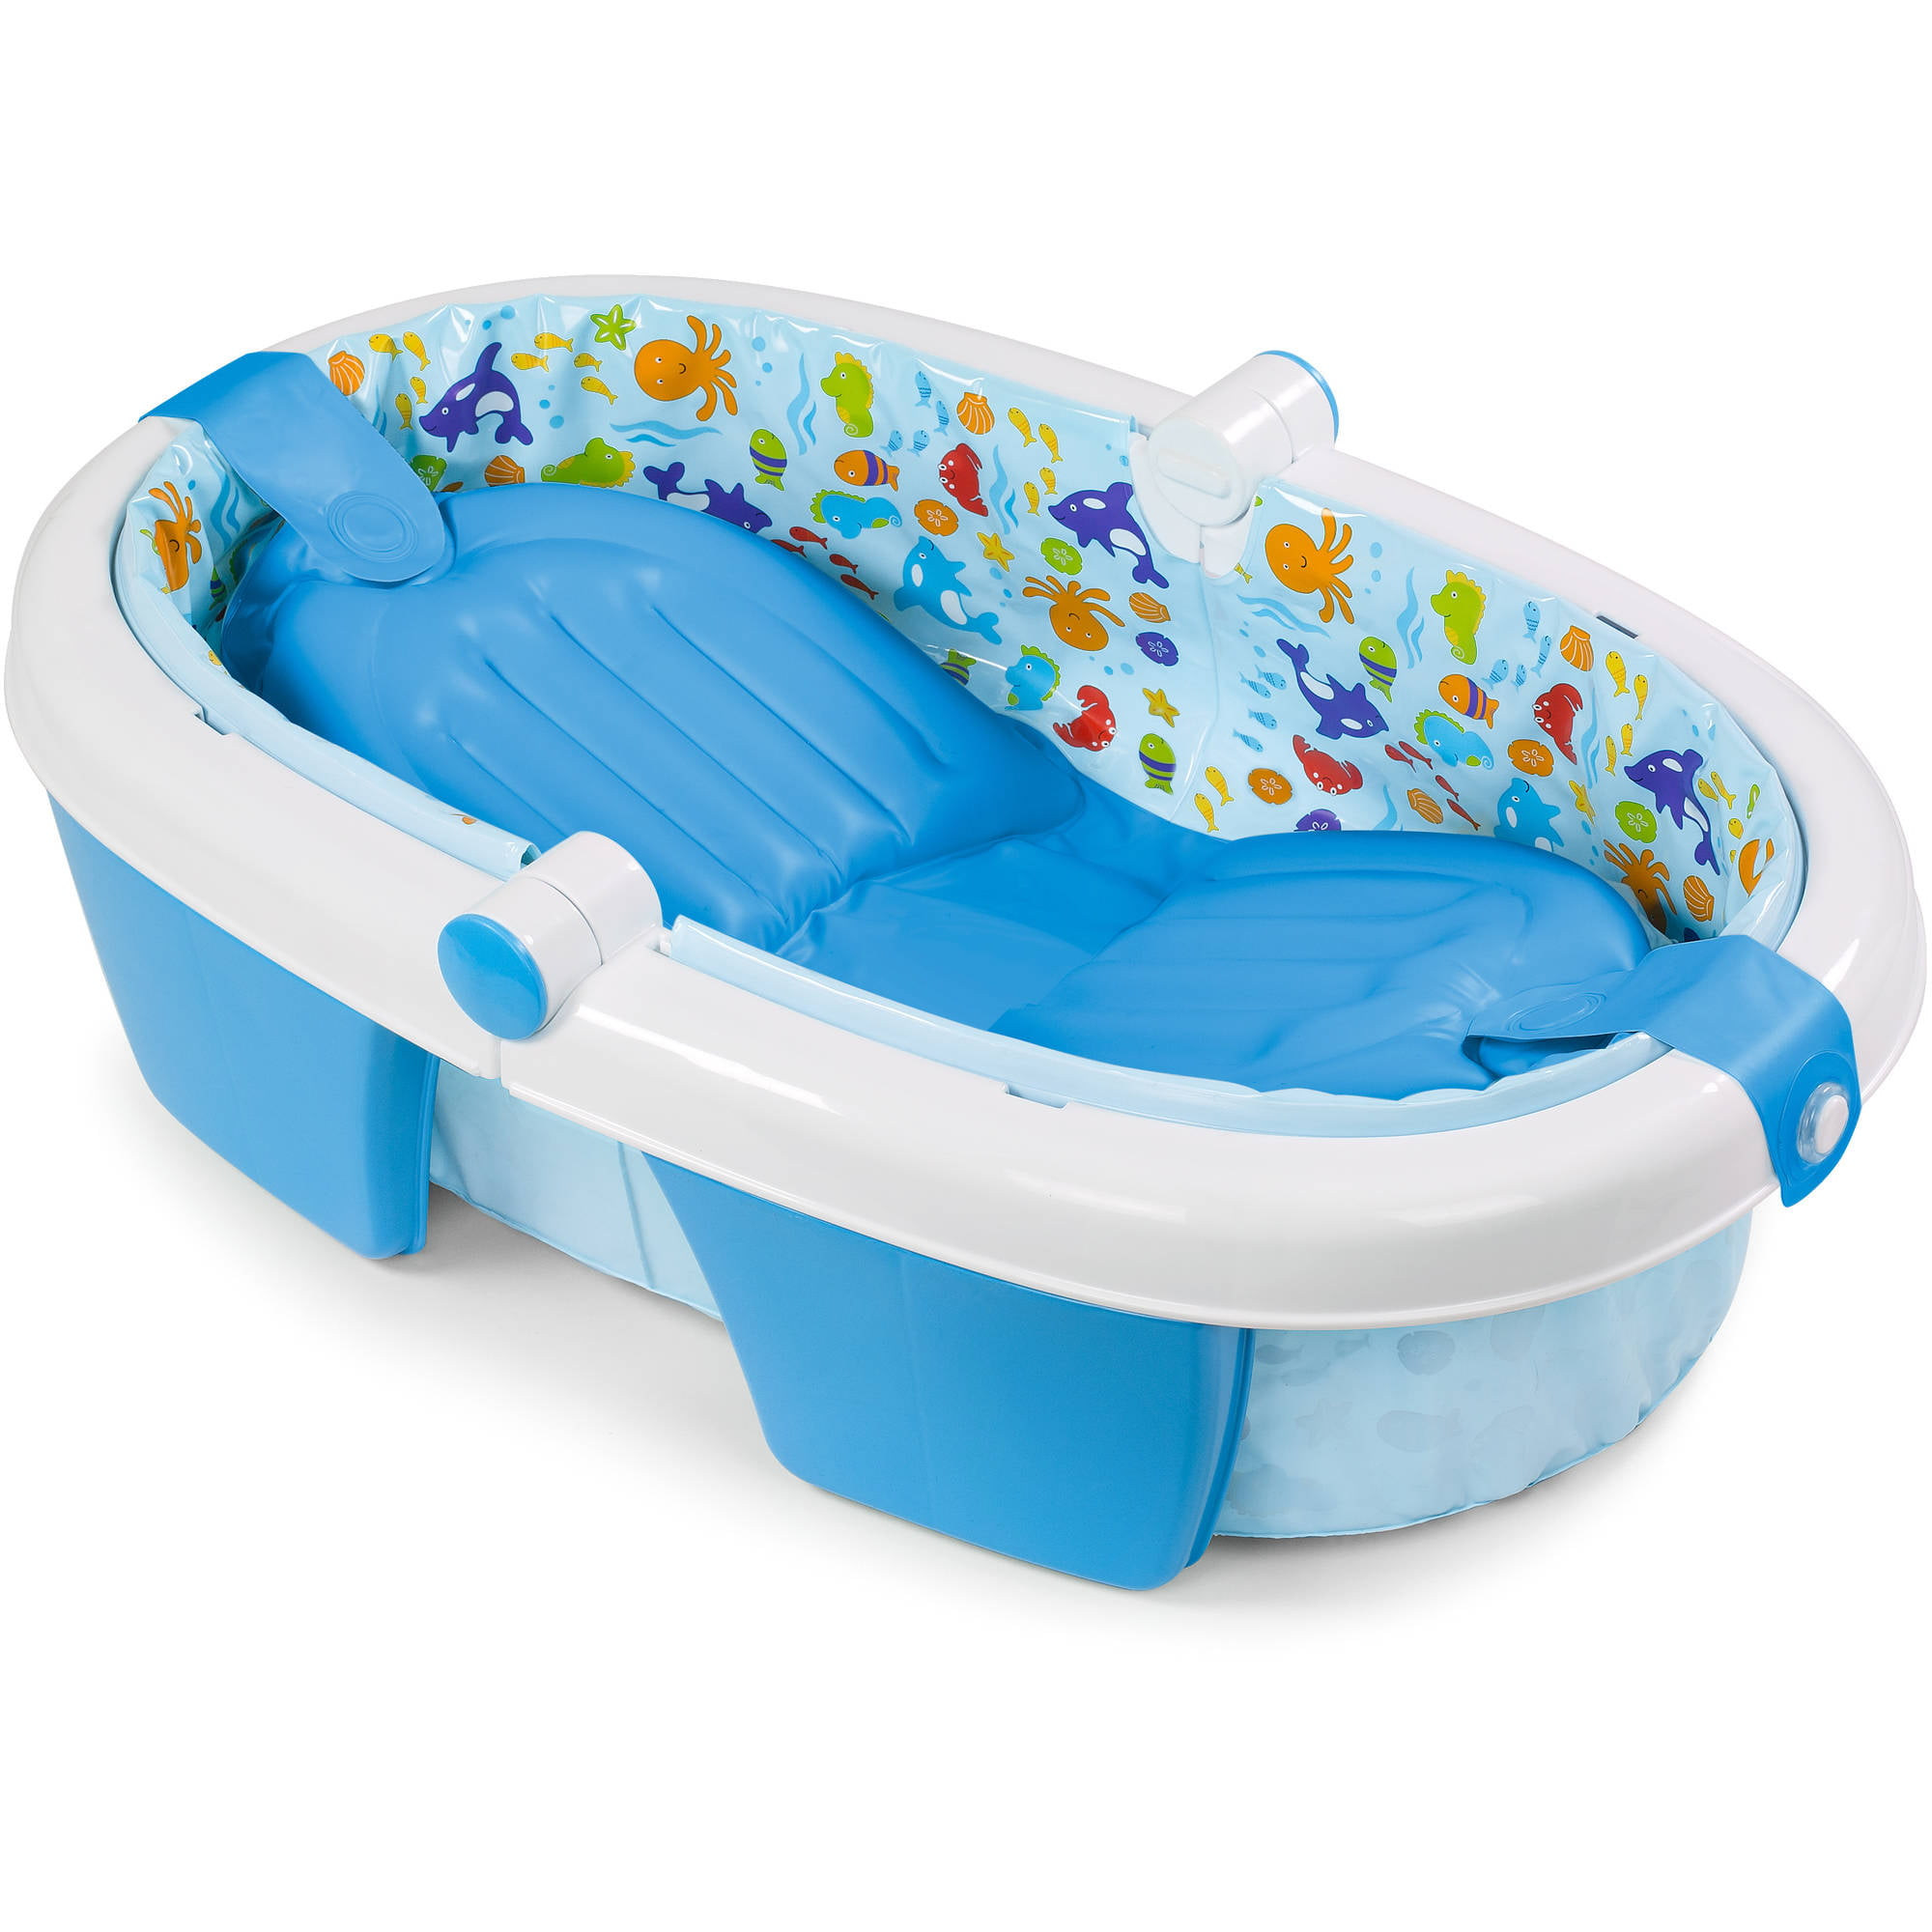 Summer Infant Splish \'n Splash Newborn to Toddler Tub, Blue ...